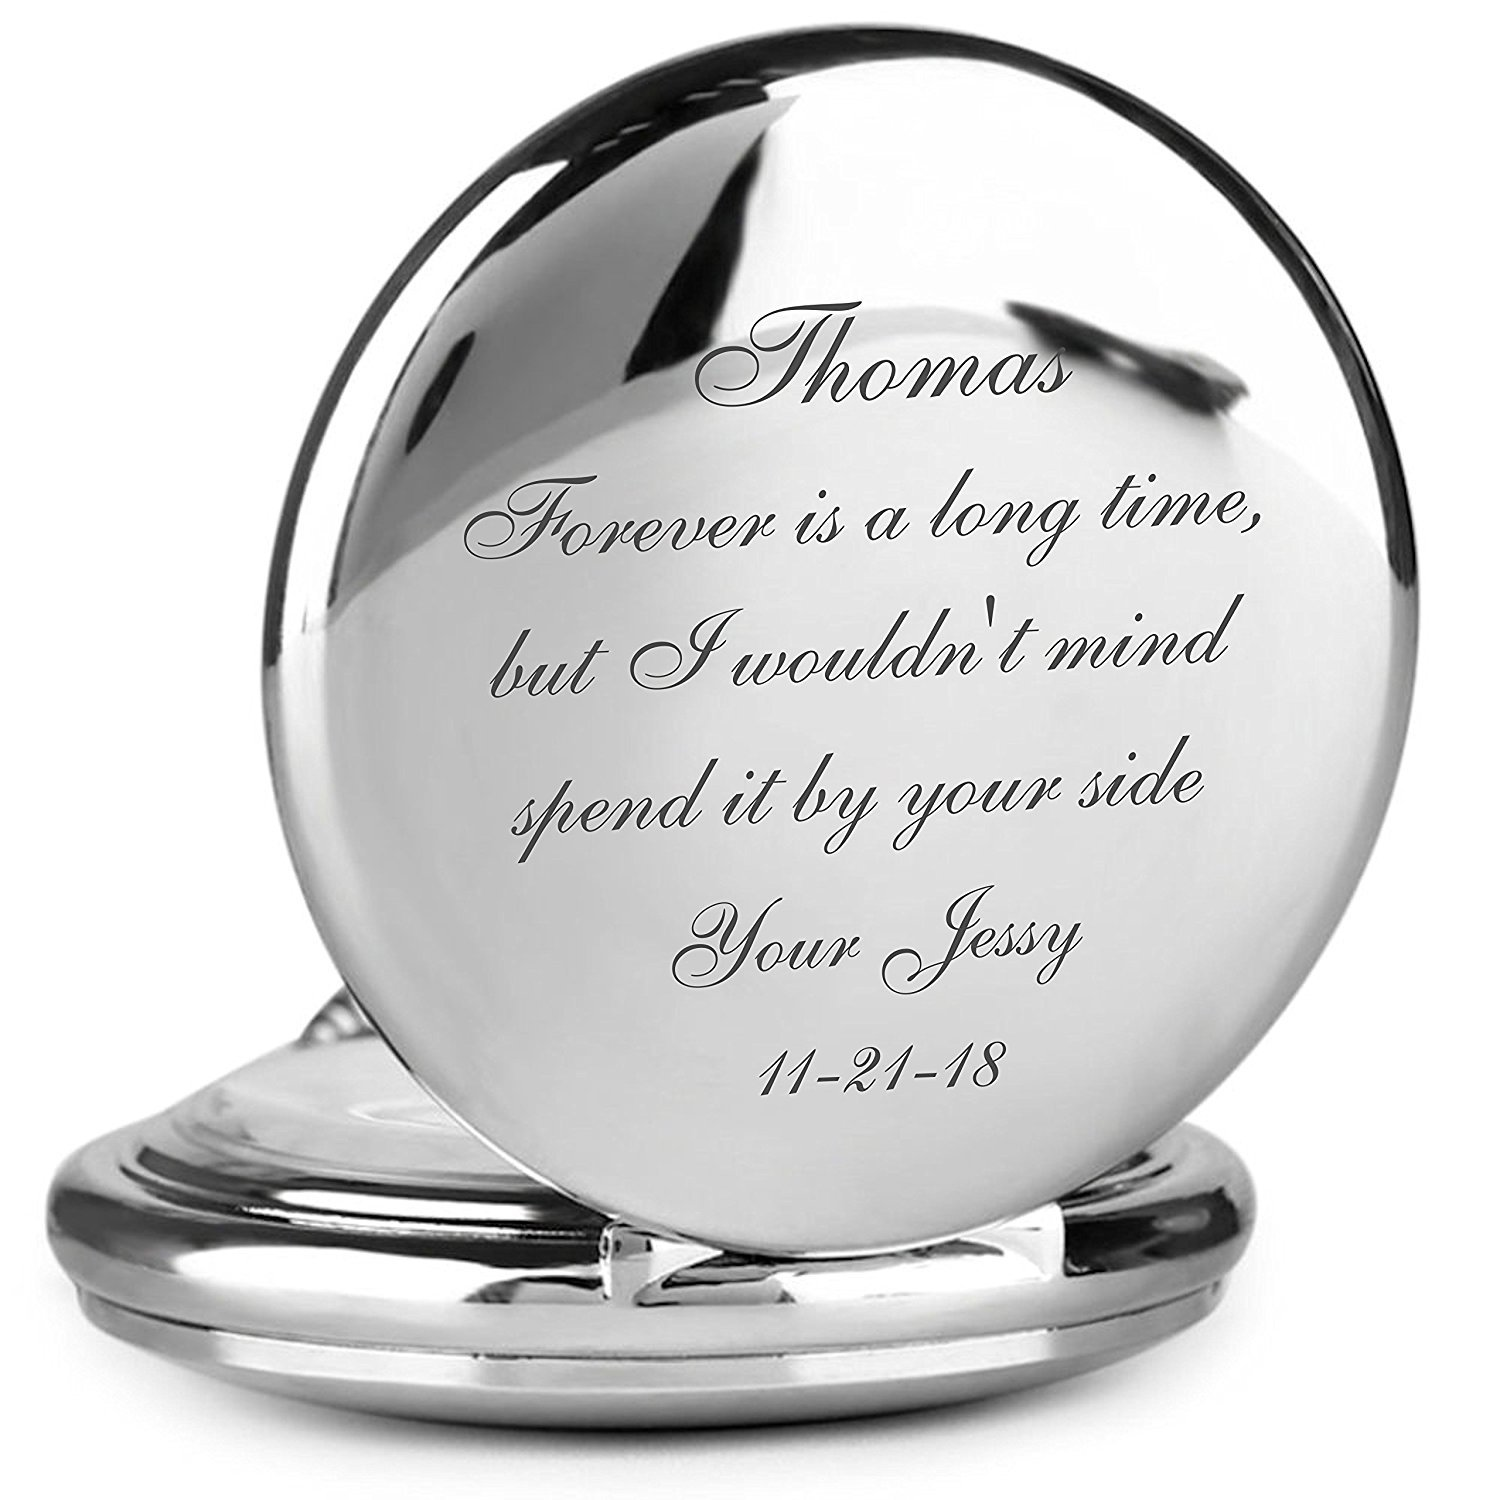 Personalized Silver Stainless Steel Pocket Watch Engraved Free by A & L Engraving